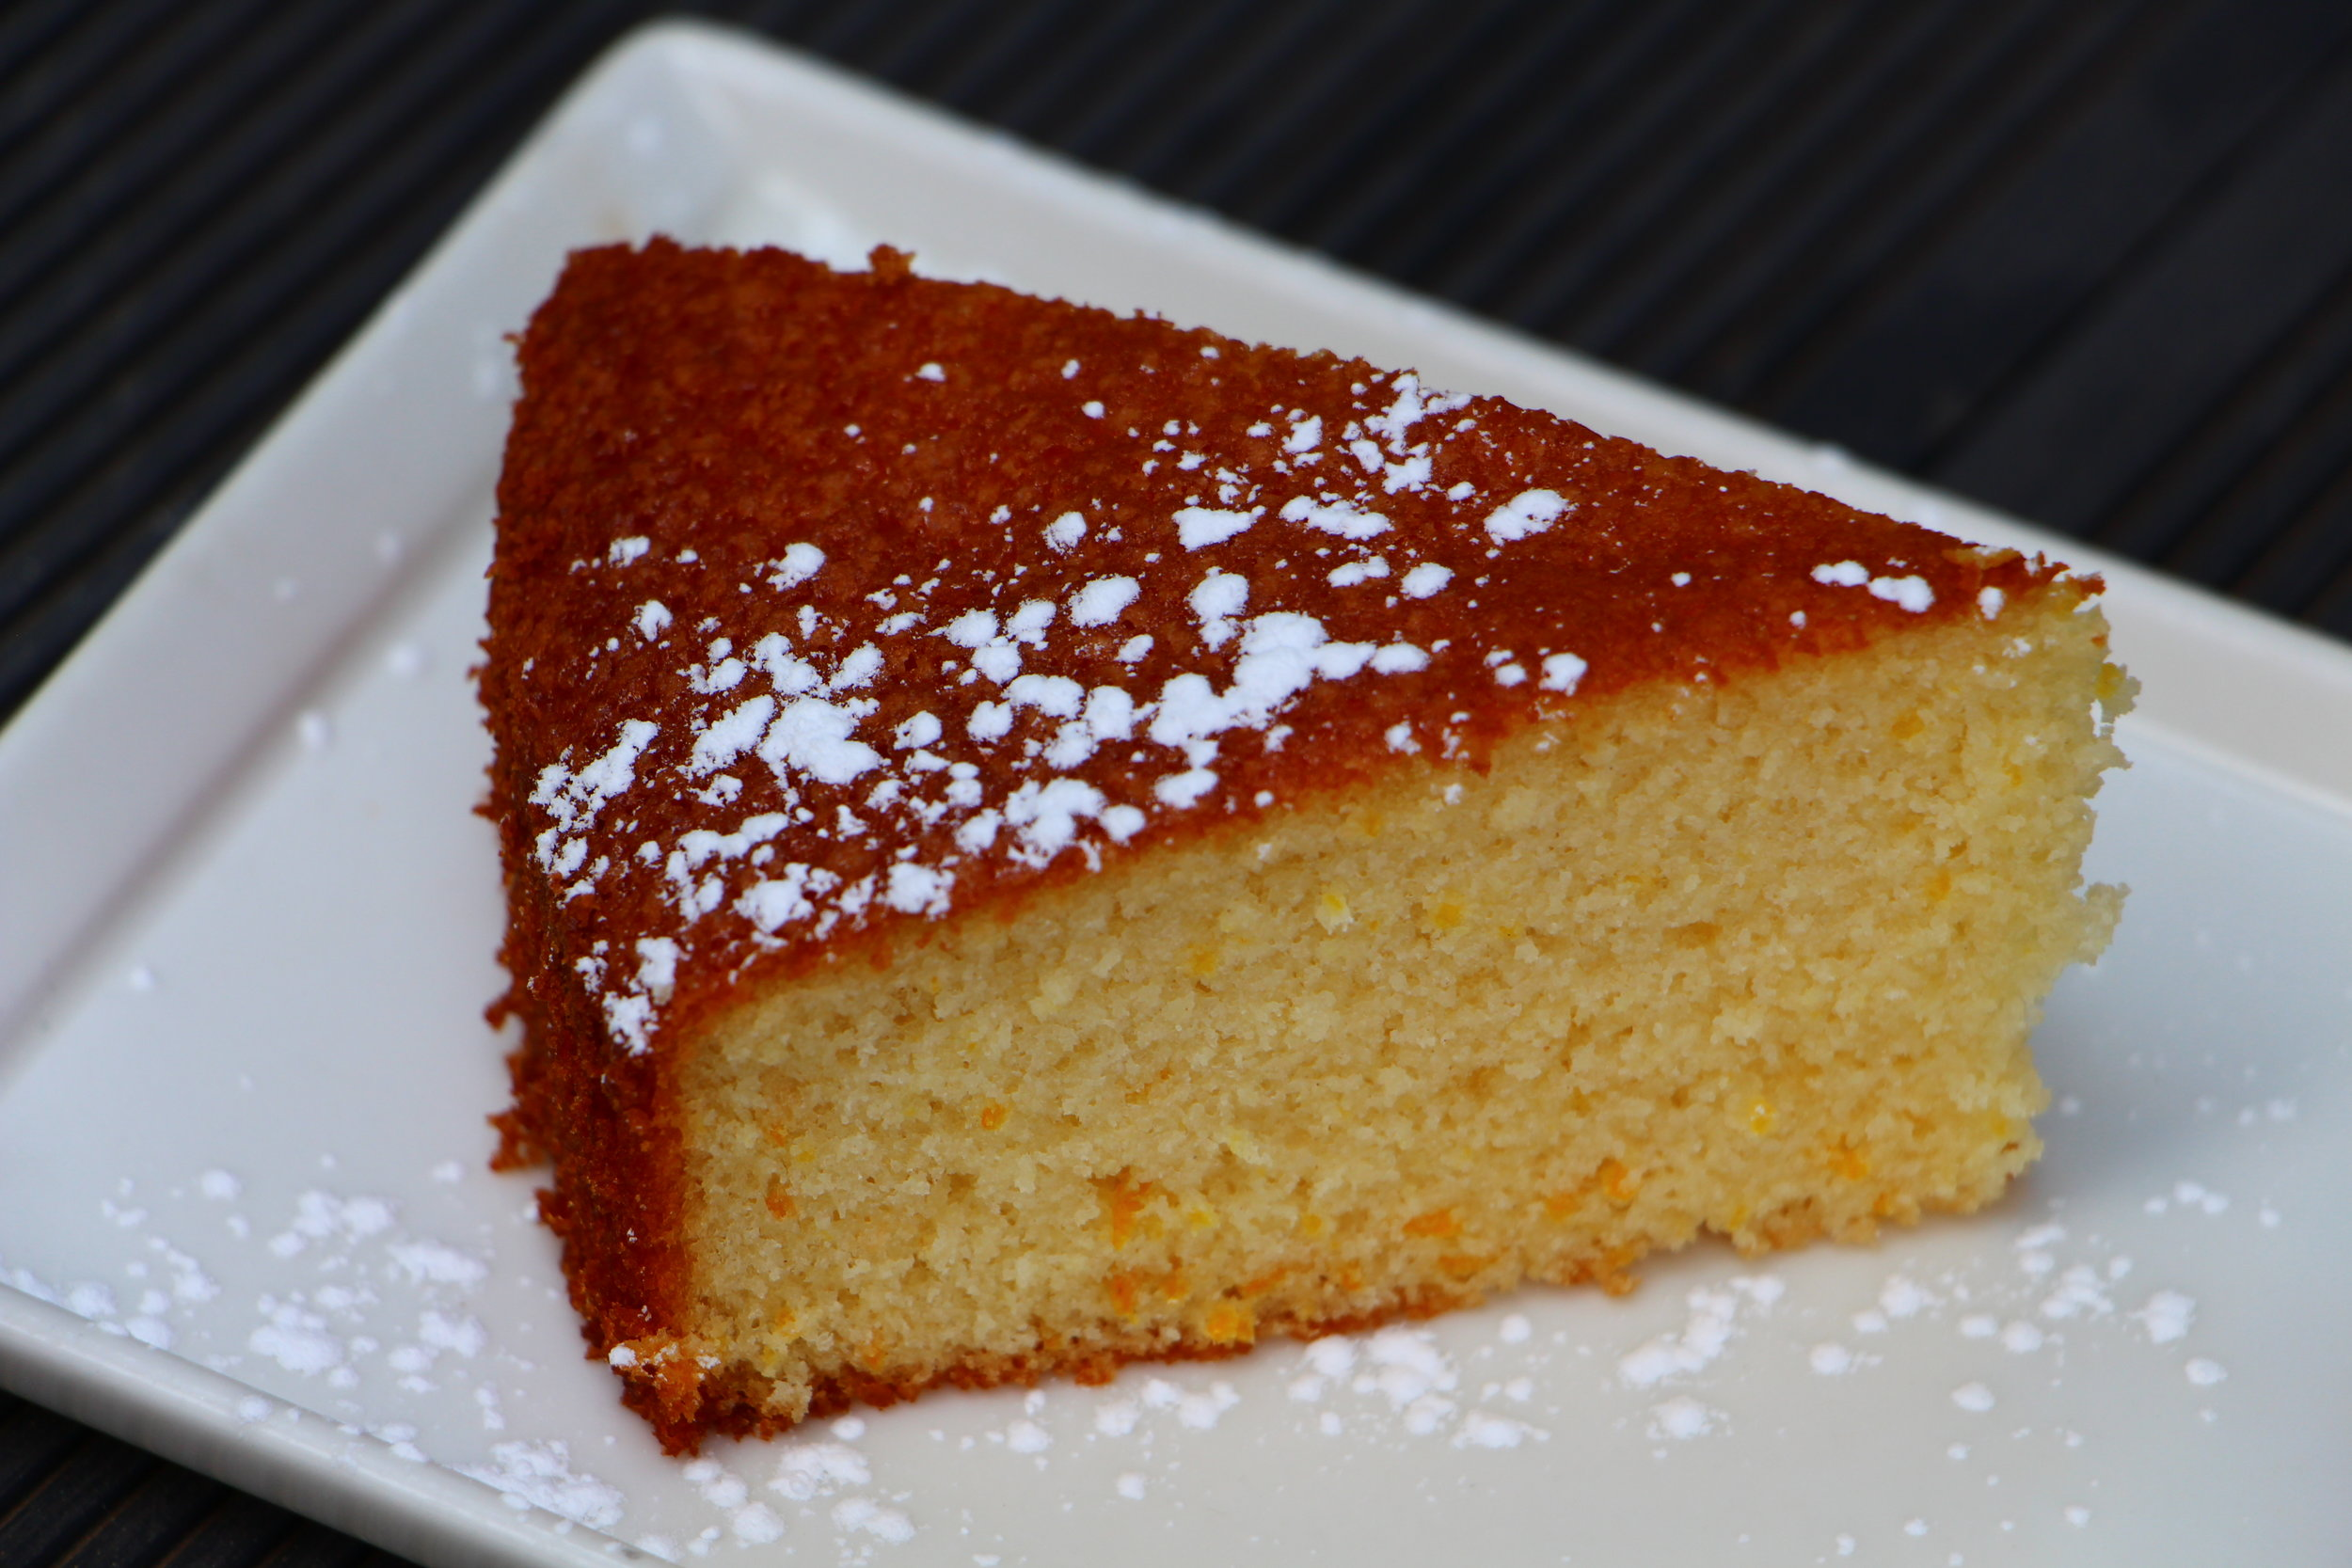 A simple cake sweetened with citrusy orange will make the pickiest eaters happy.